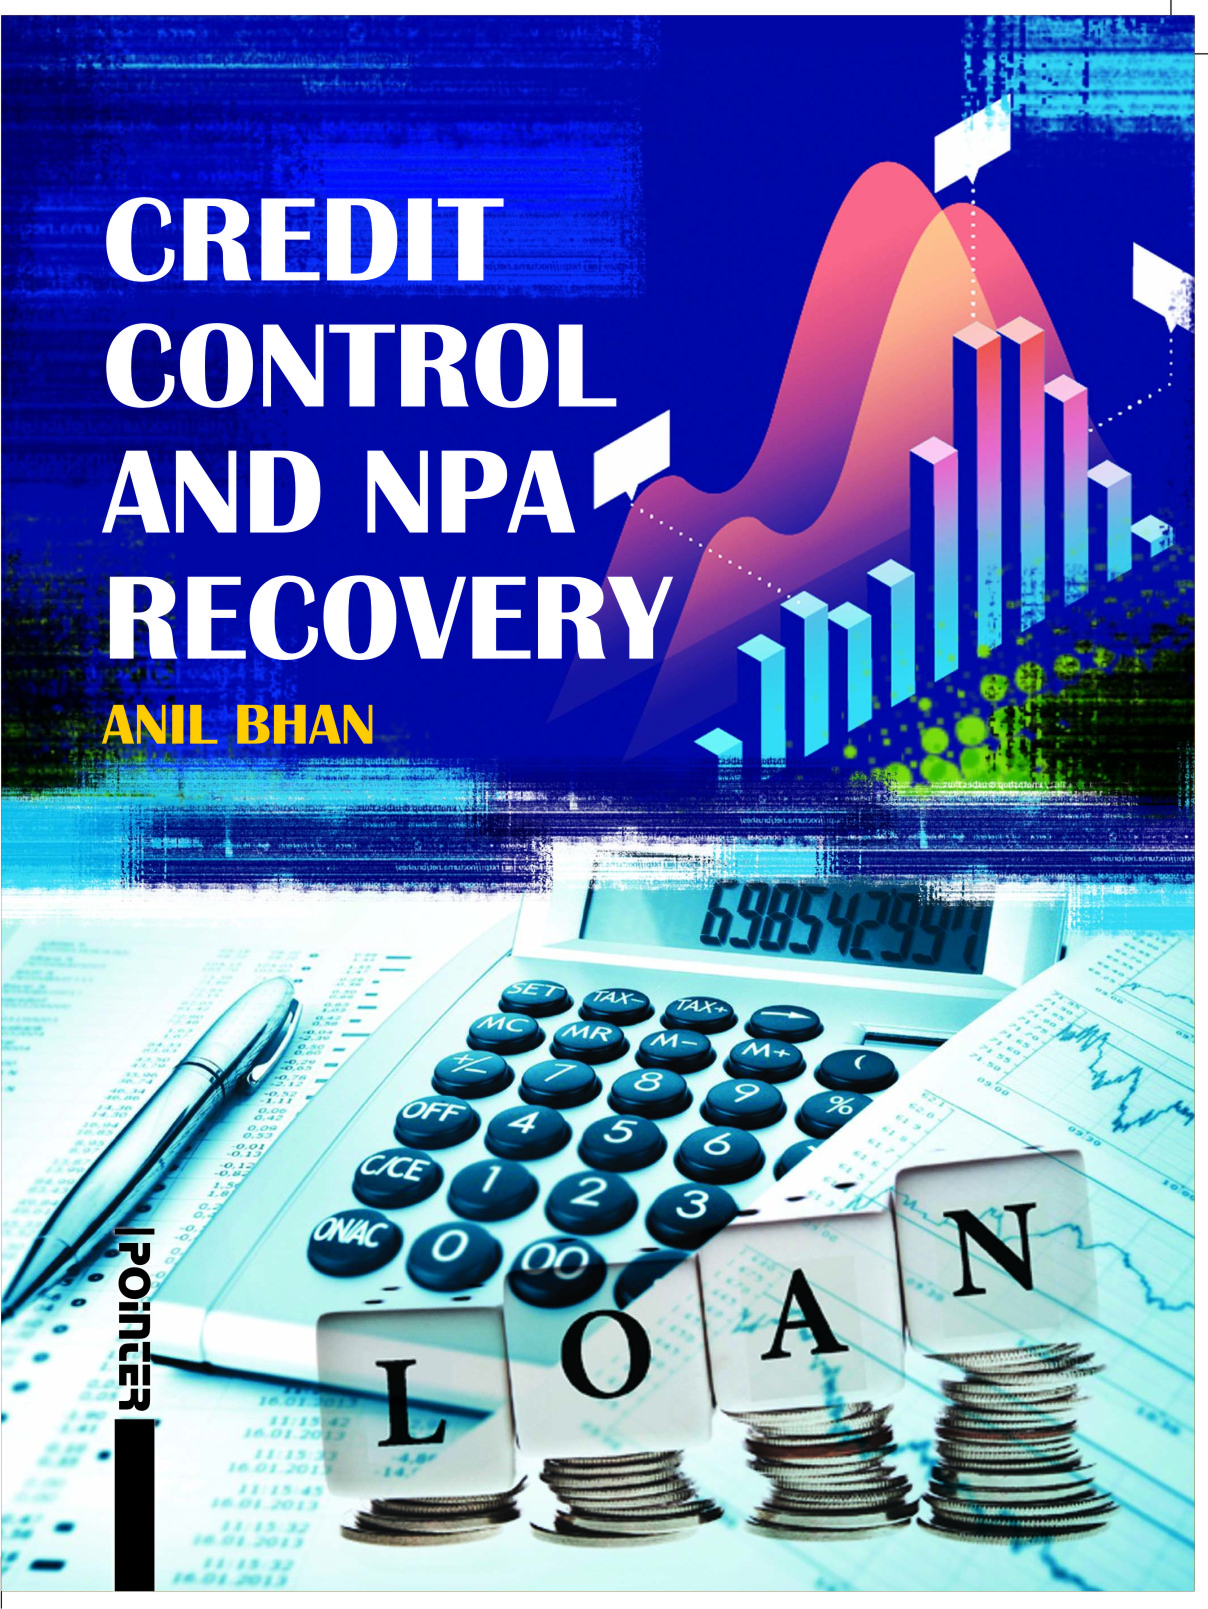 Credit Cotrol and NPA Recovery